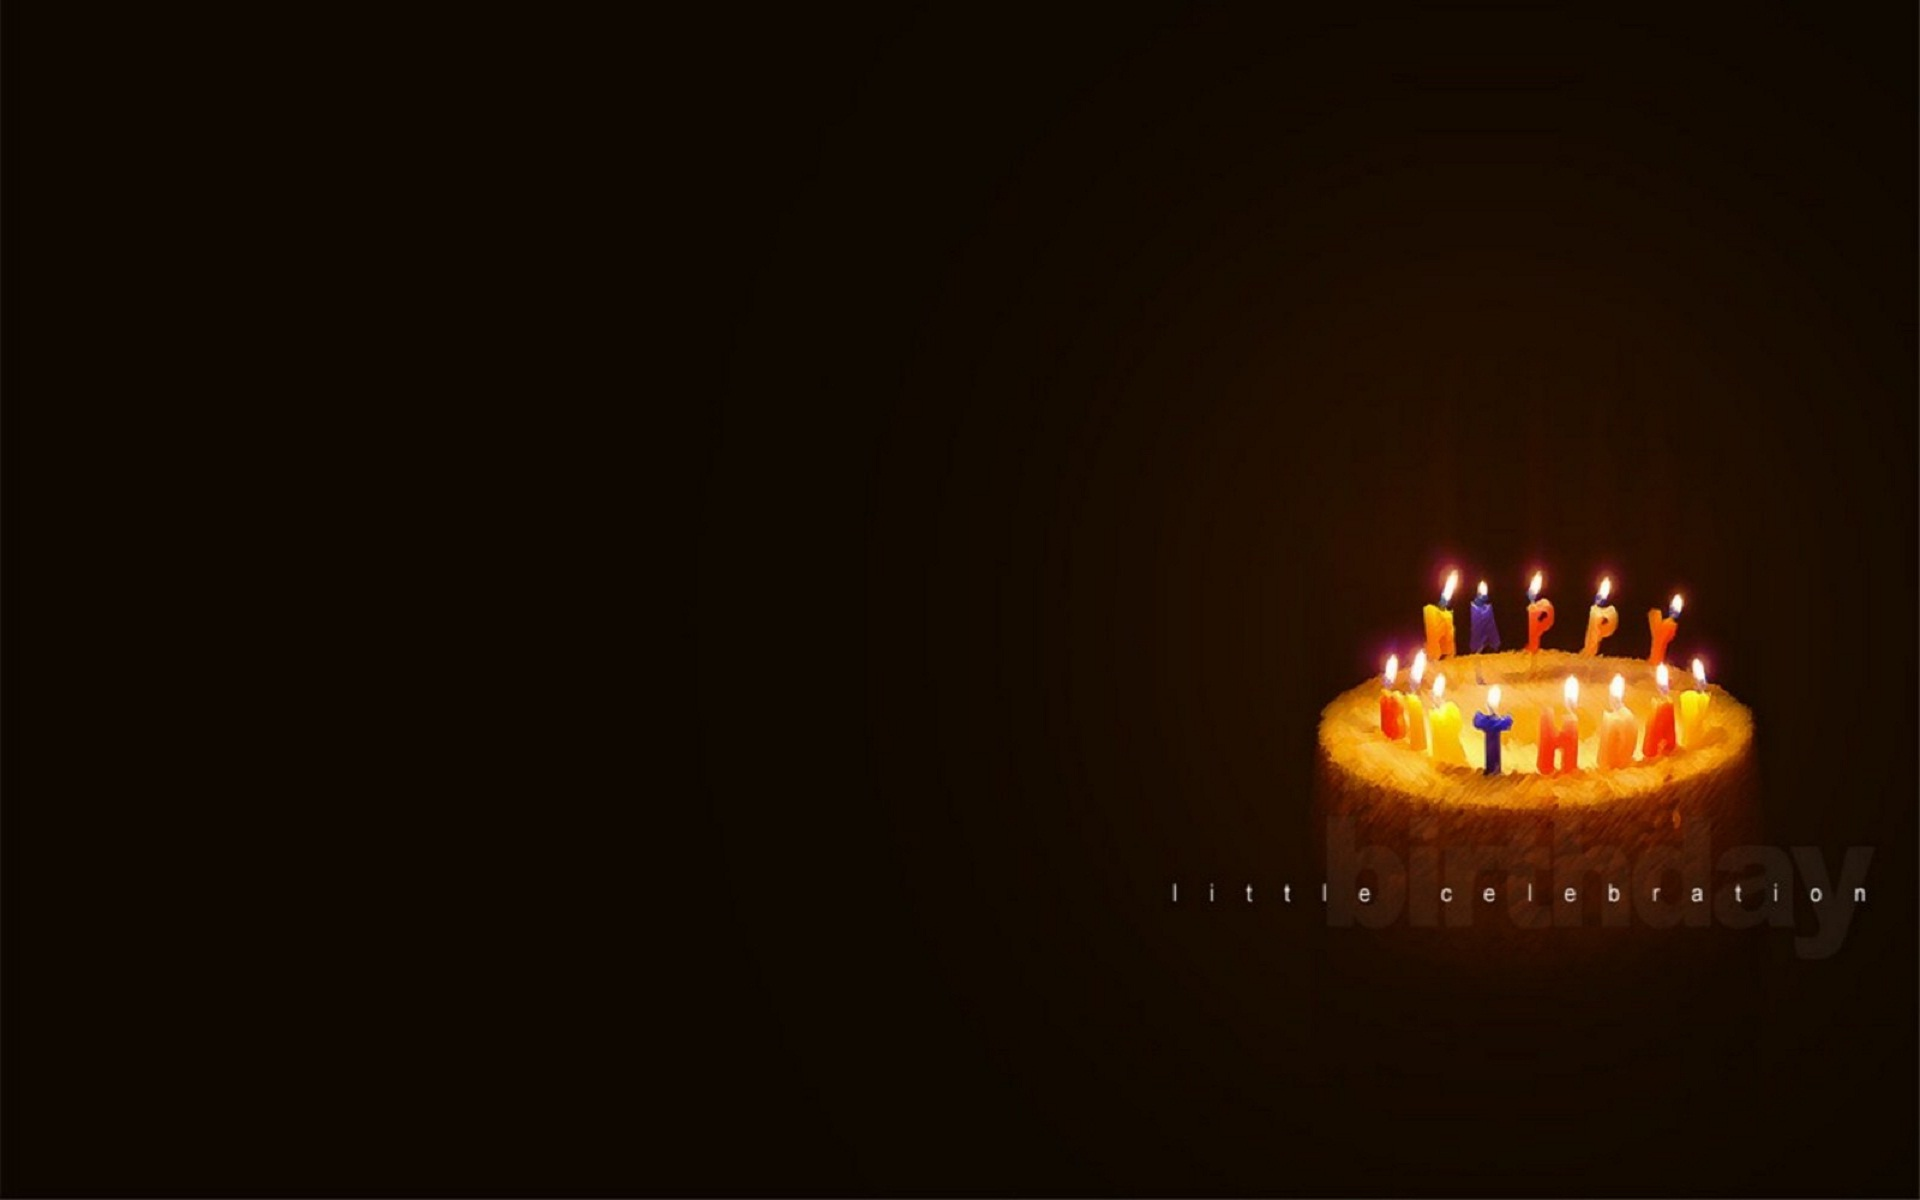 birthday wishes pics hd ; Friends-birthday-wishes-mobile-HD-wallpapers